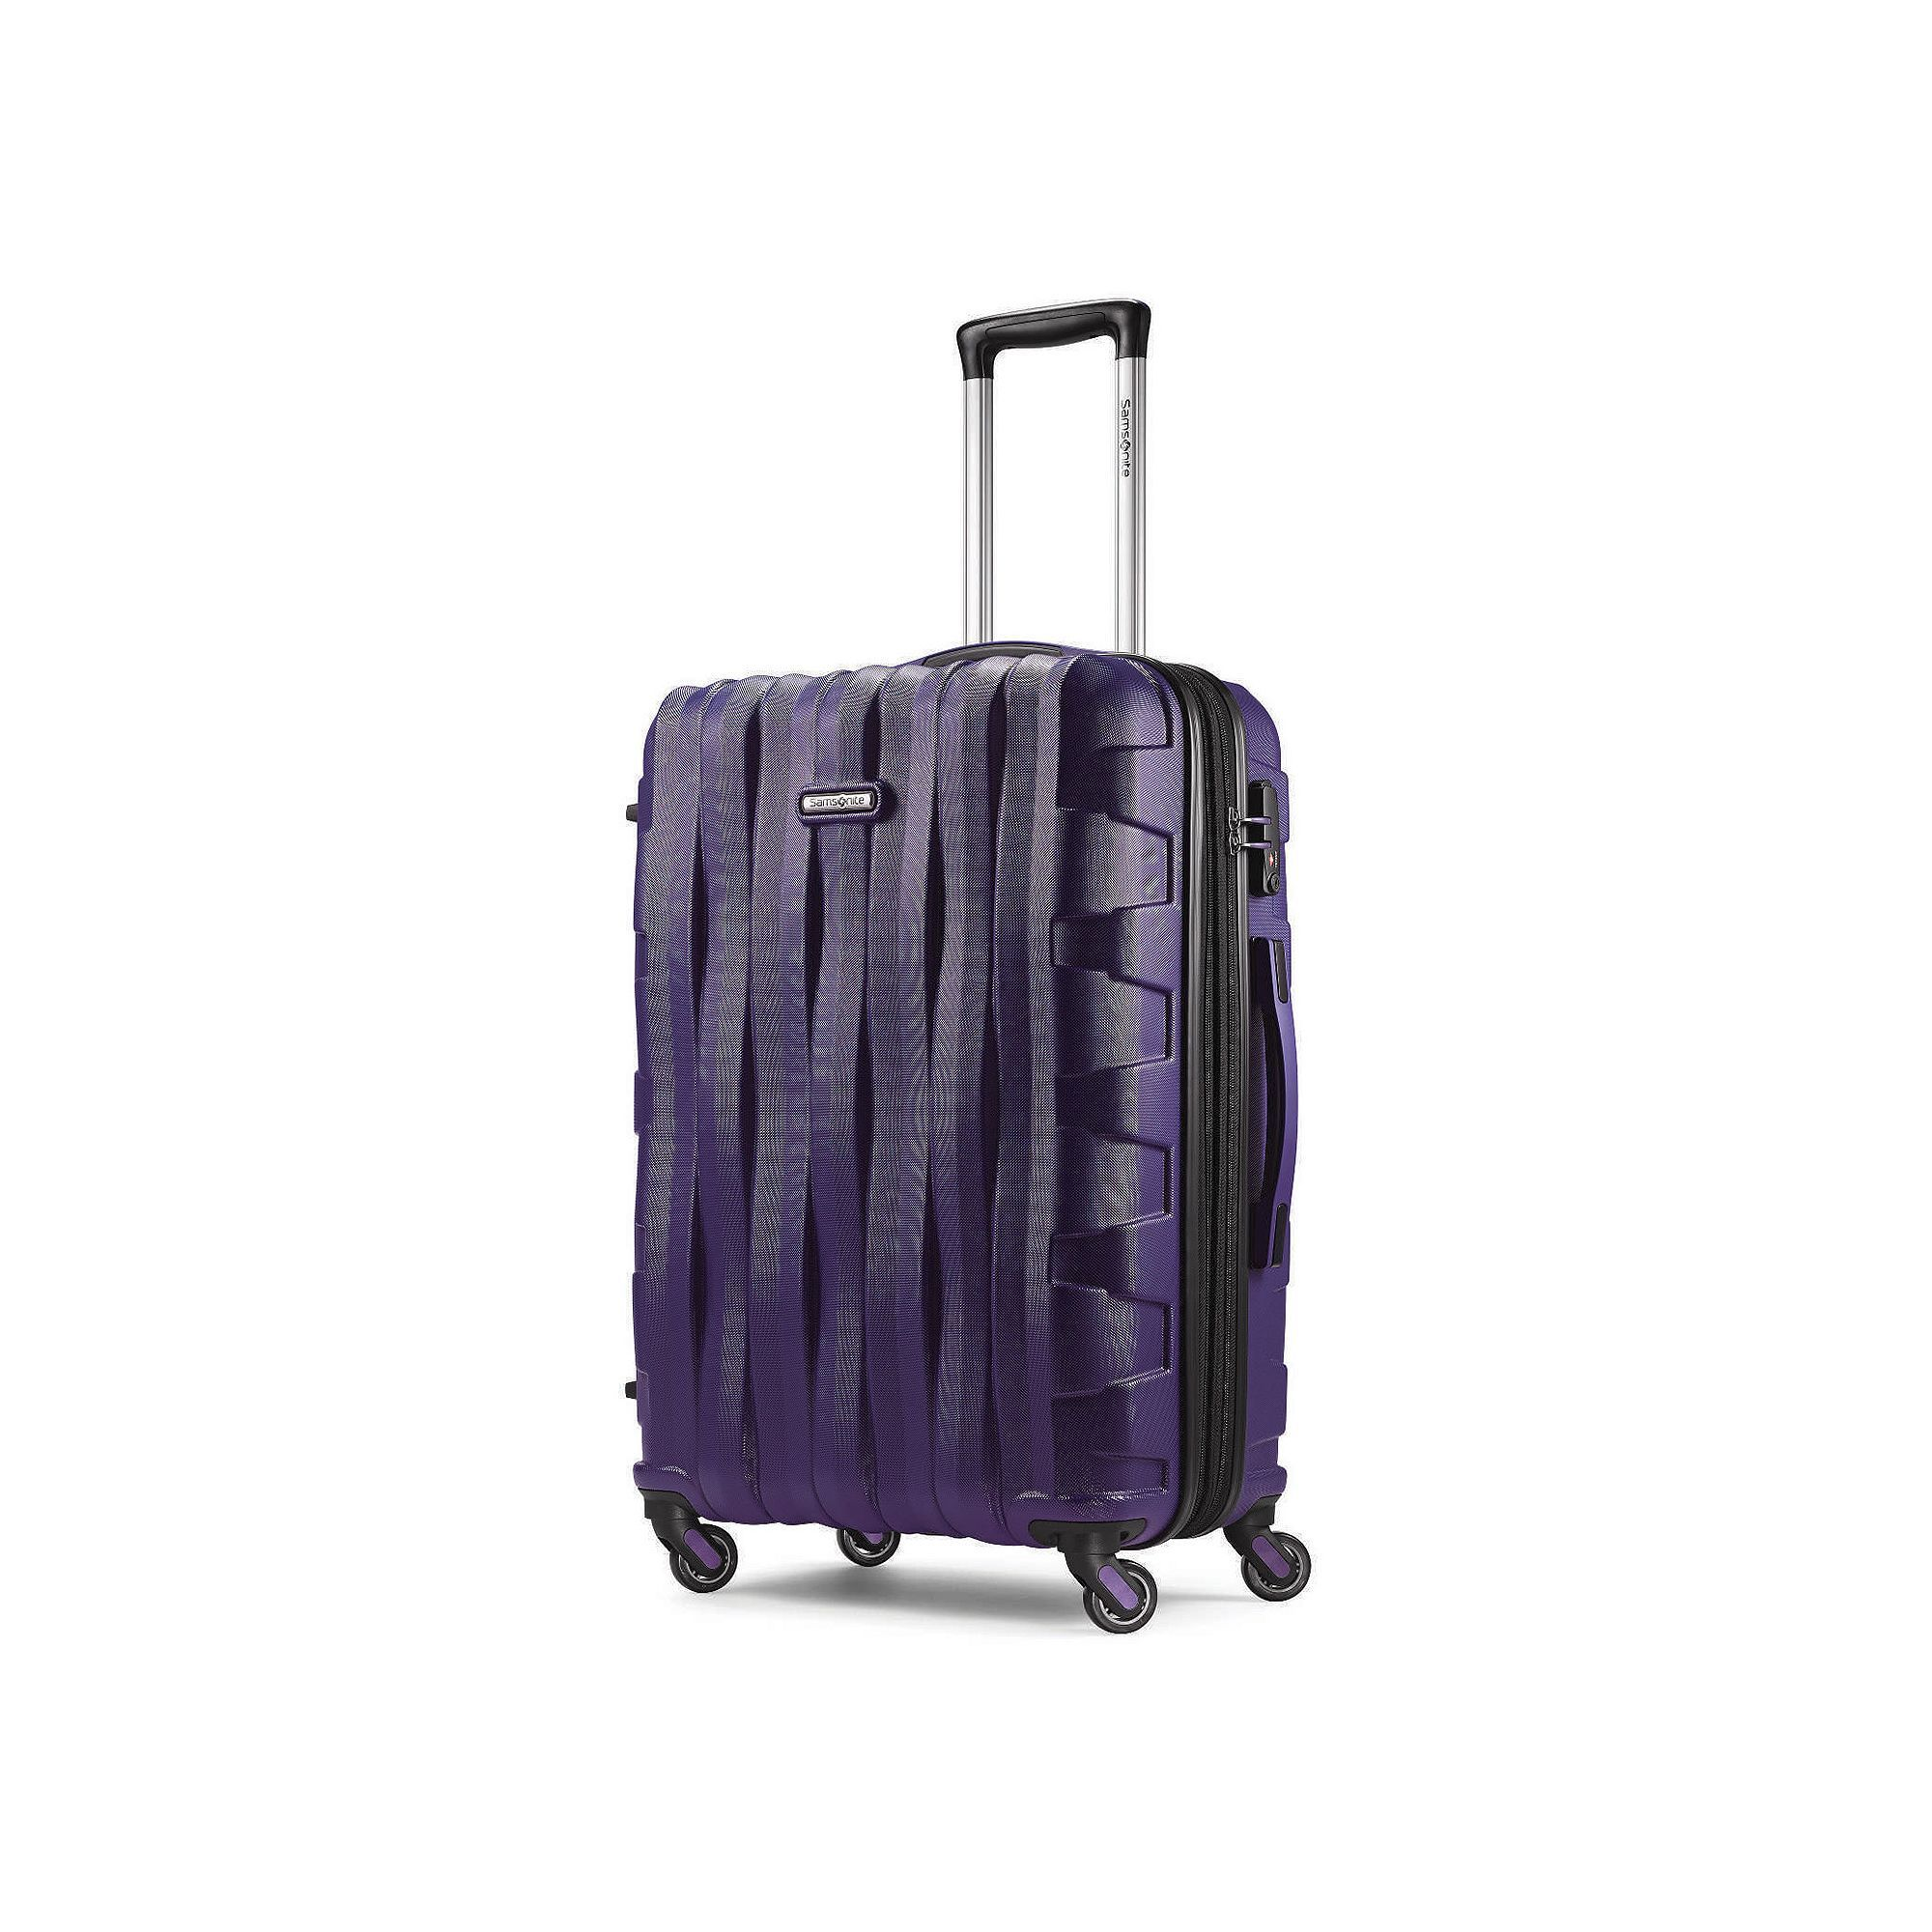 005915605b Samsonite Ziplite 3.0 Hardside Spinner Luggage